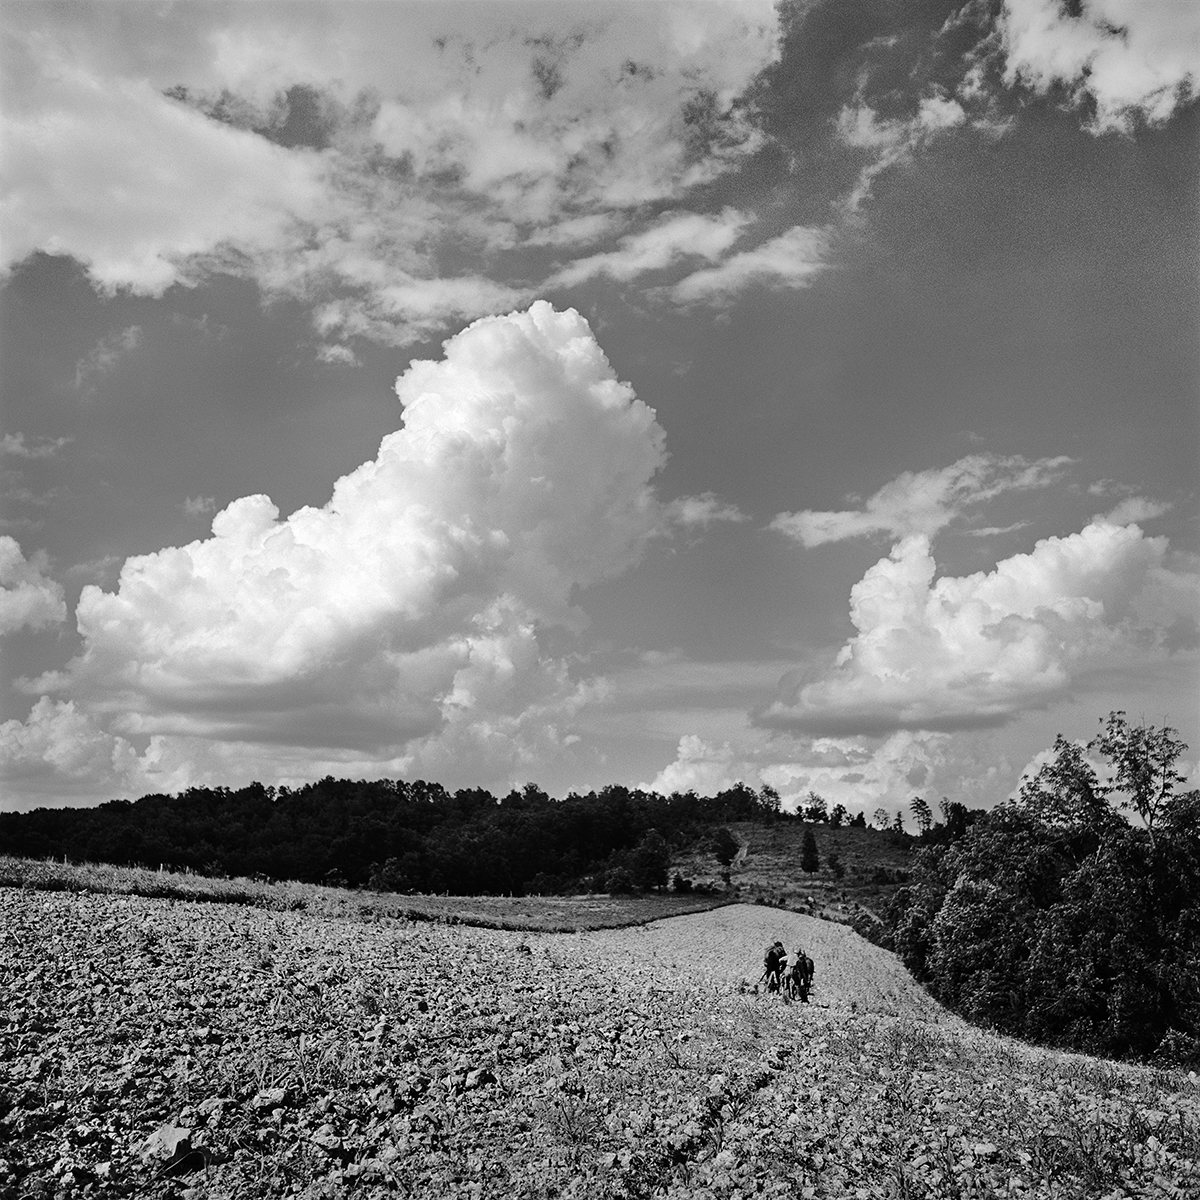 Ed Stilley Plowing Hilltop Field, 1973